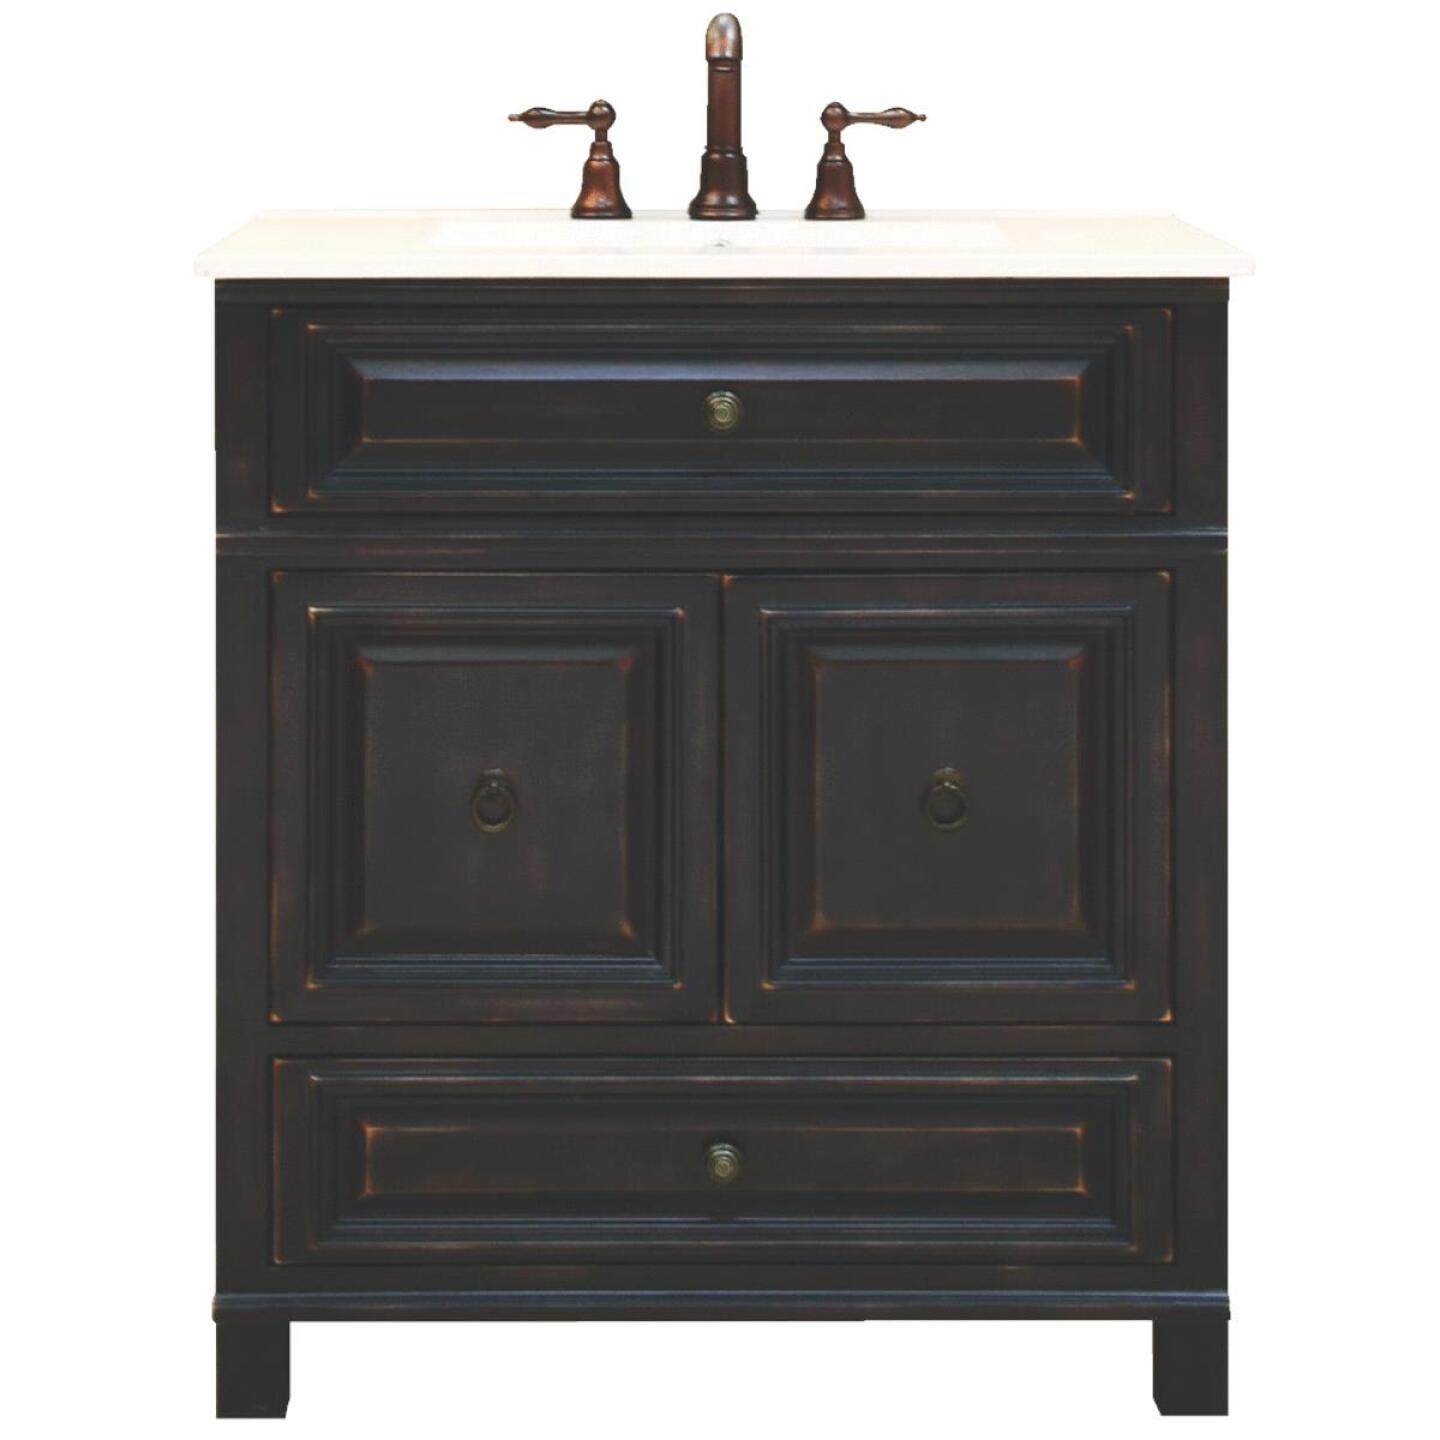 Sunny Wood Barton Hill Black Onyx 30 In. W x 34 In. H x 21 In. D Vanity Base, 2 Door/1 Drawer Image 65